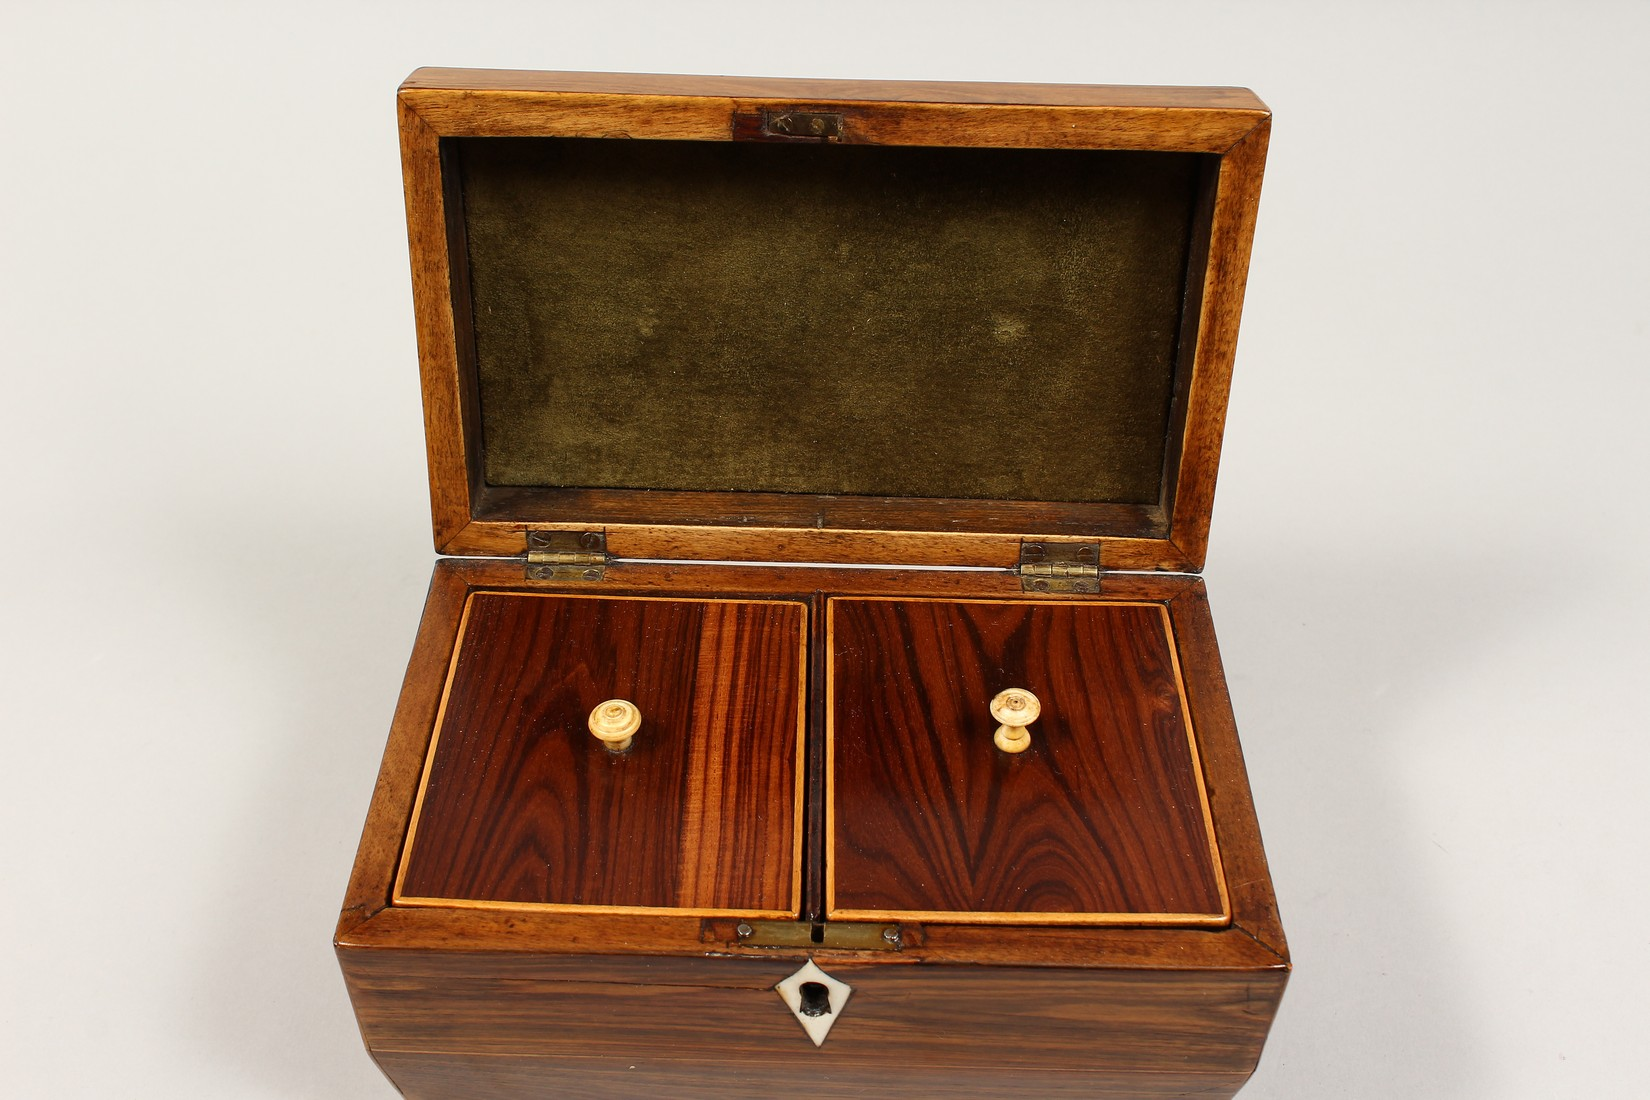 A REGENCY ROSEWOOD DOMED TOP TWO DIVISION TEA CADDY with iron escutcheon on brass bracket feet. 7. - Image 6 of 7